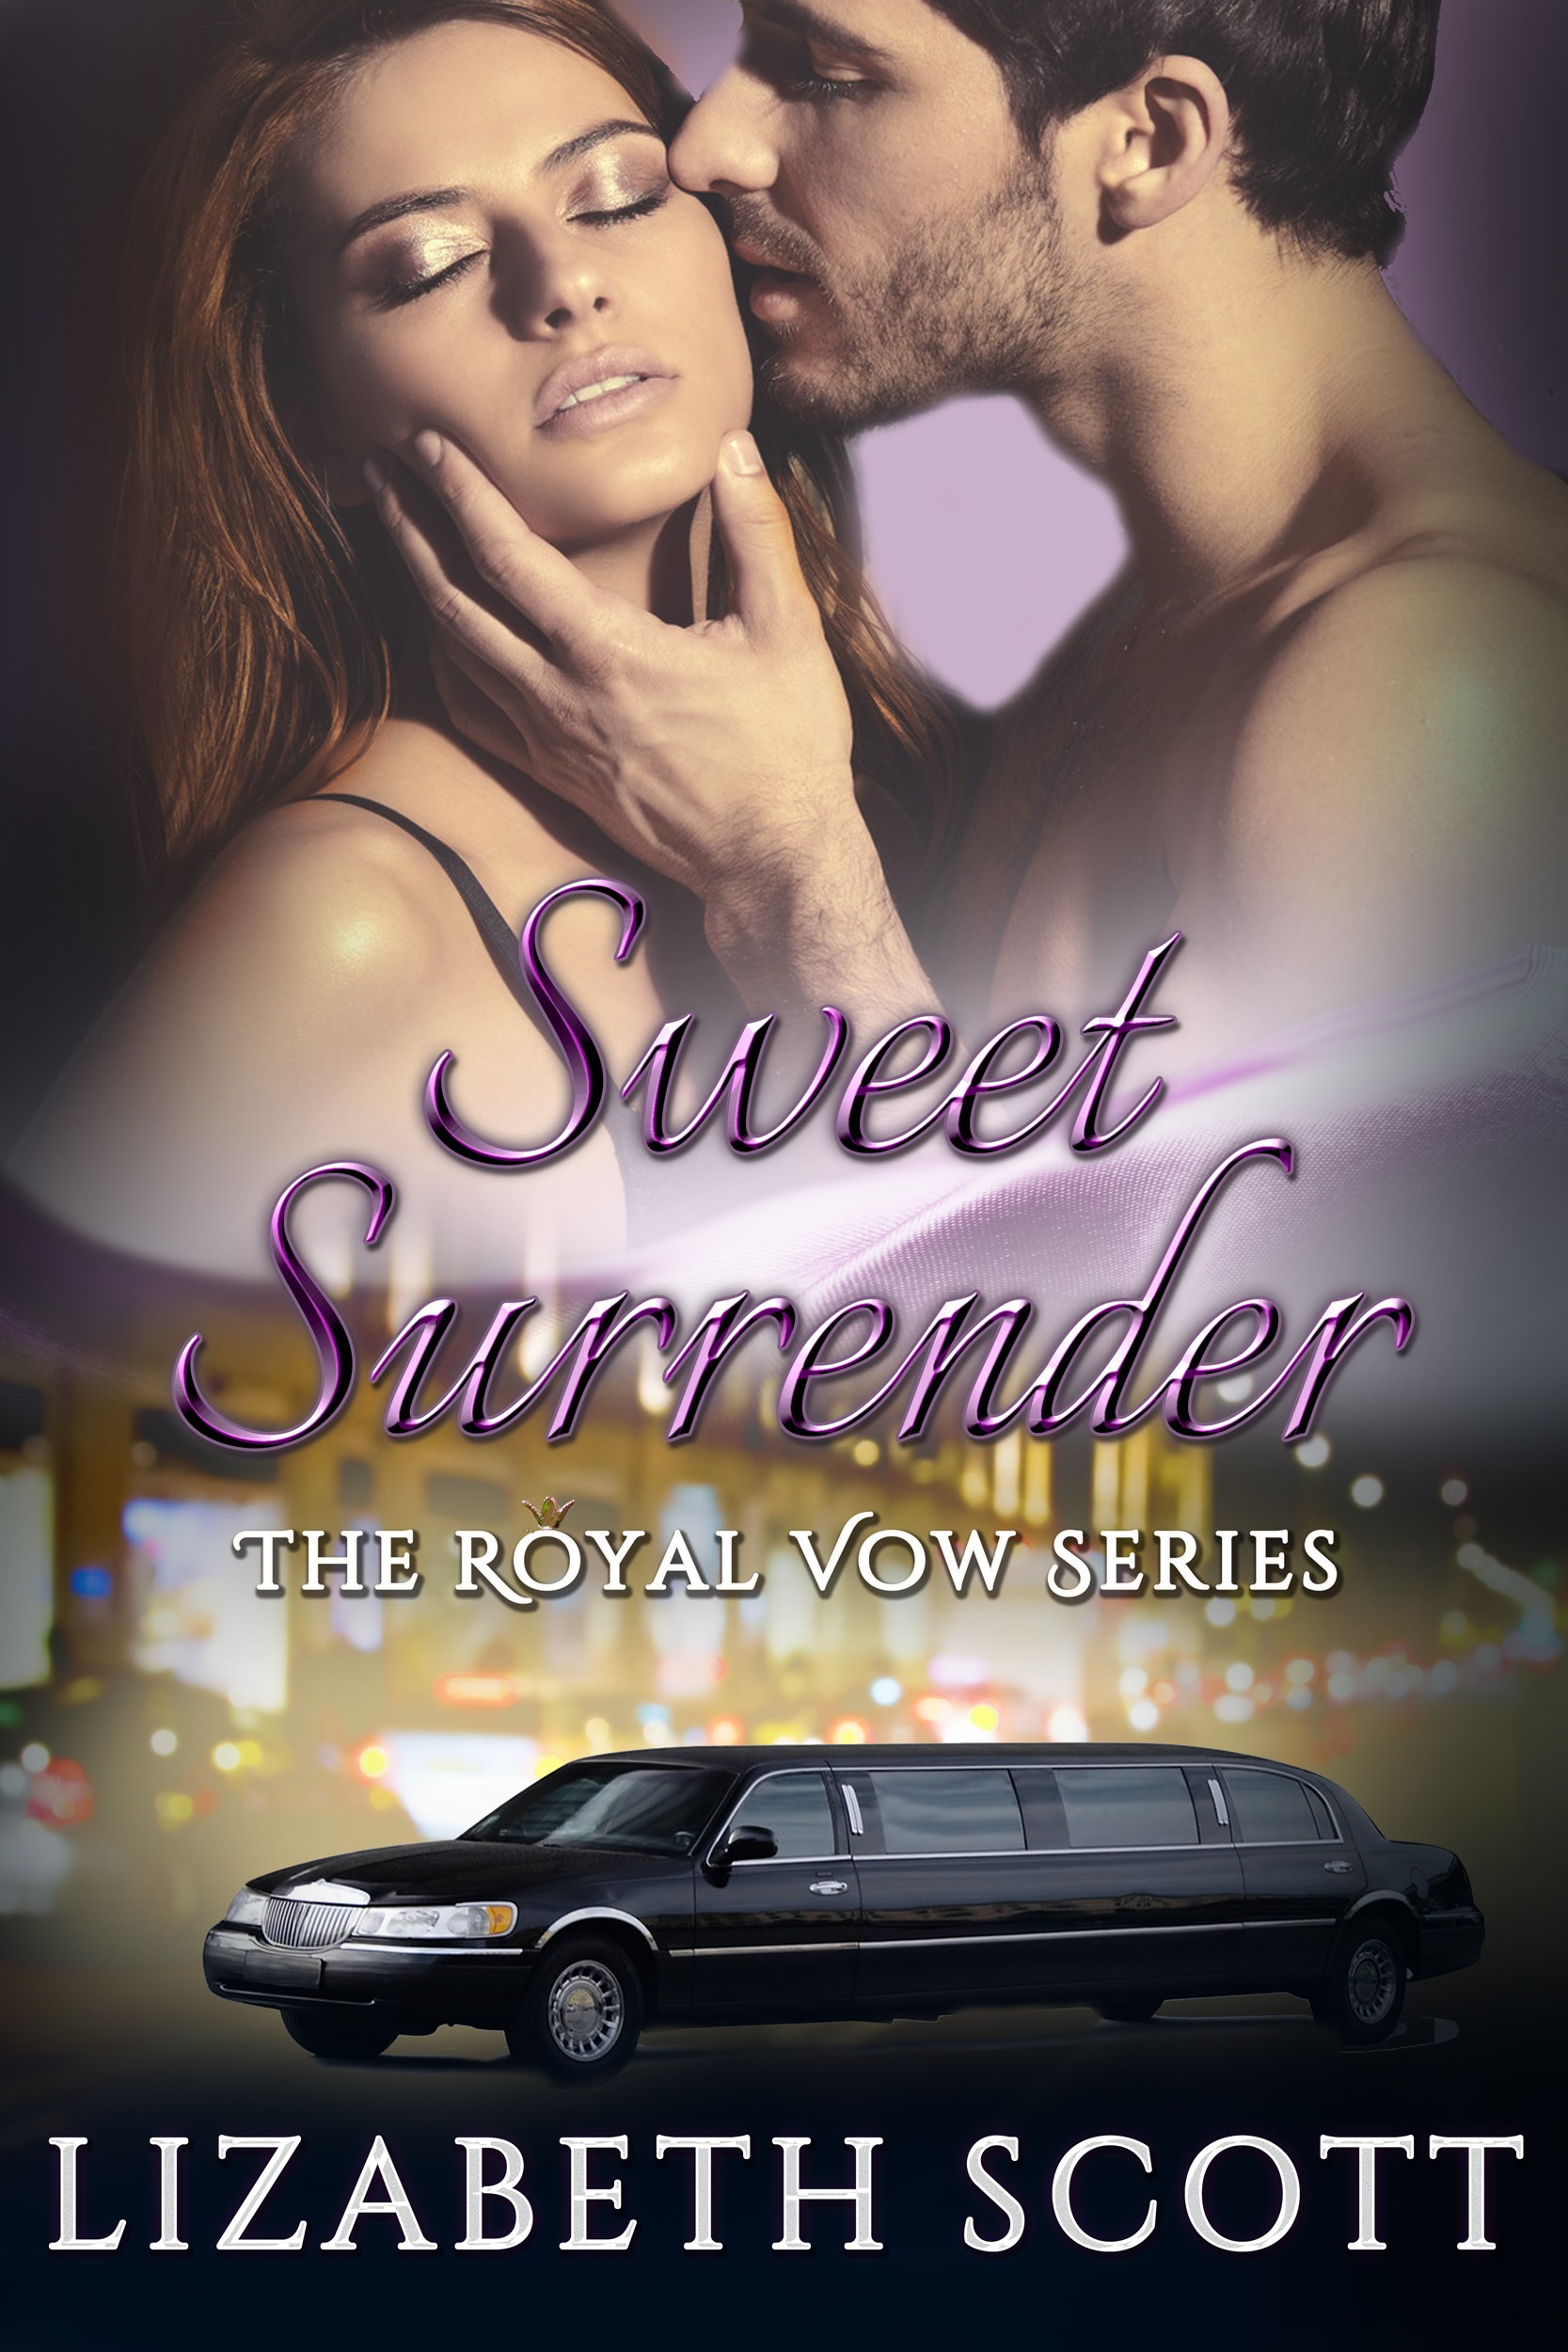 Sweet Surrender, Royal Vow Series, Contemporary Romance, Lizabeth Scott